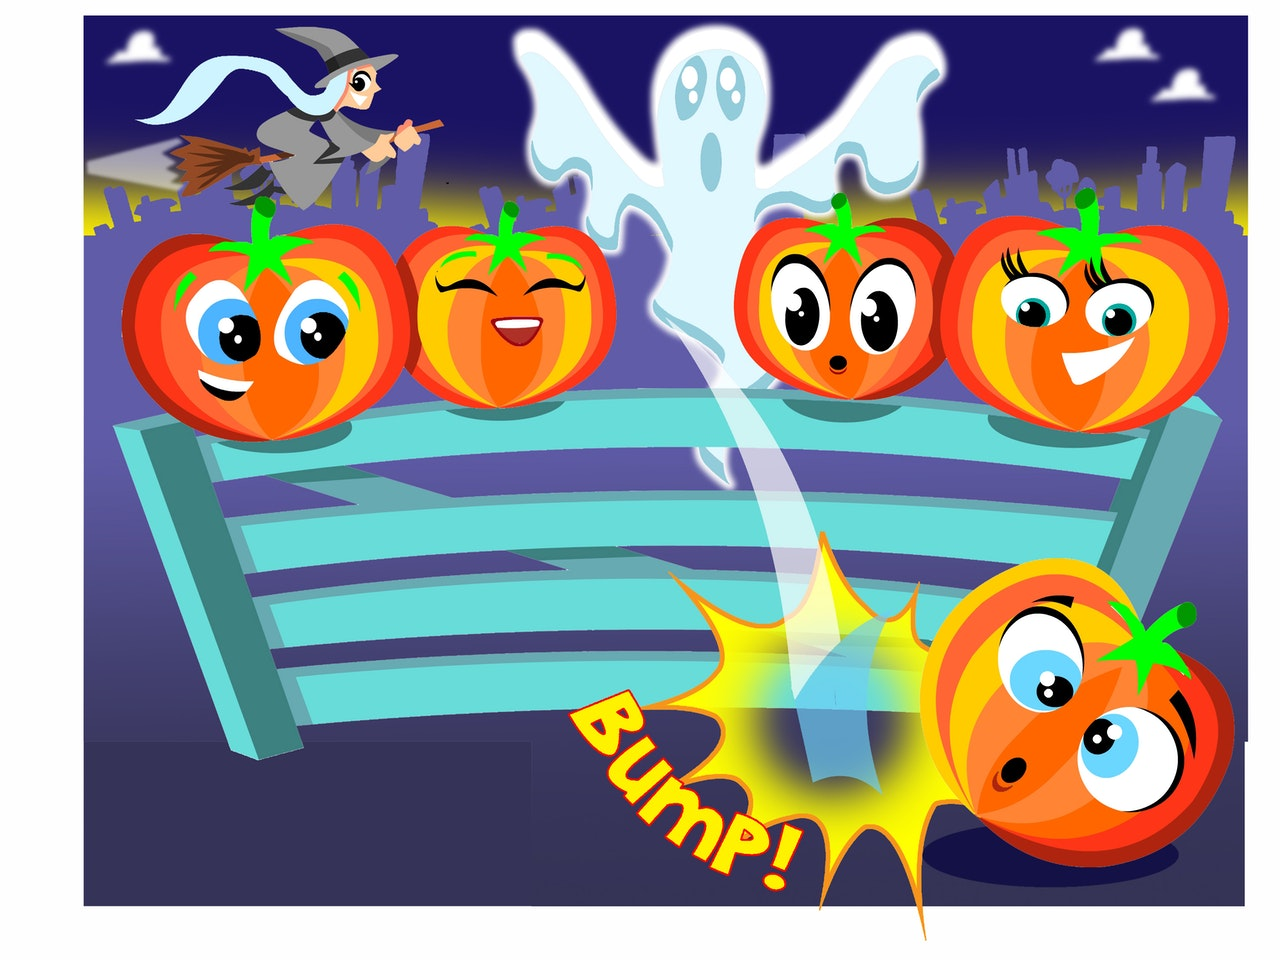 Cool funny Funky Happy manga anime childrens cartoon music singing dancing activity healthy spooky ghosts halloween pumpkins witch